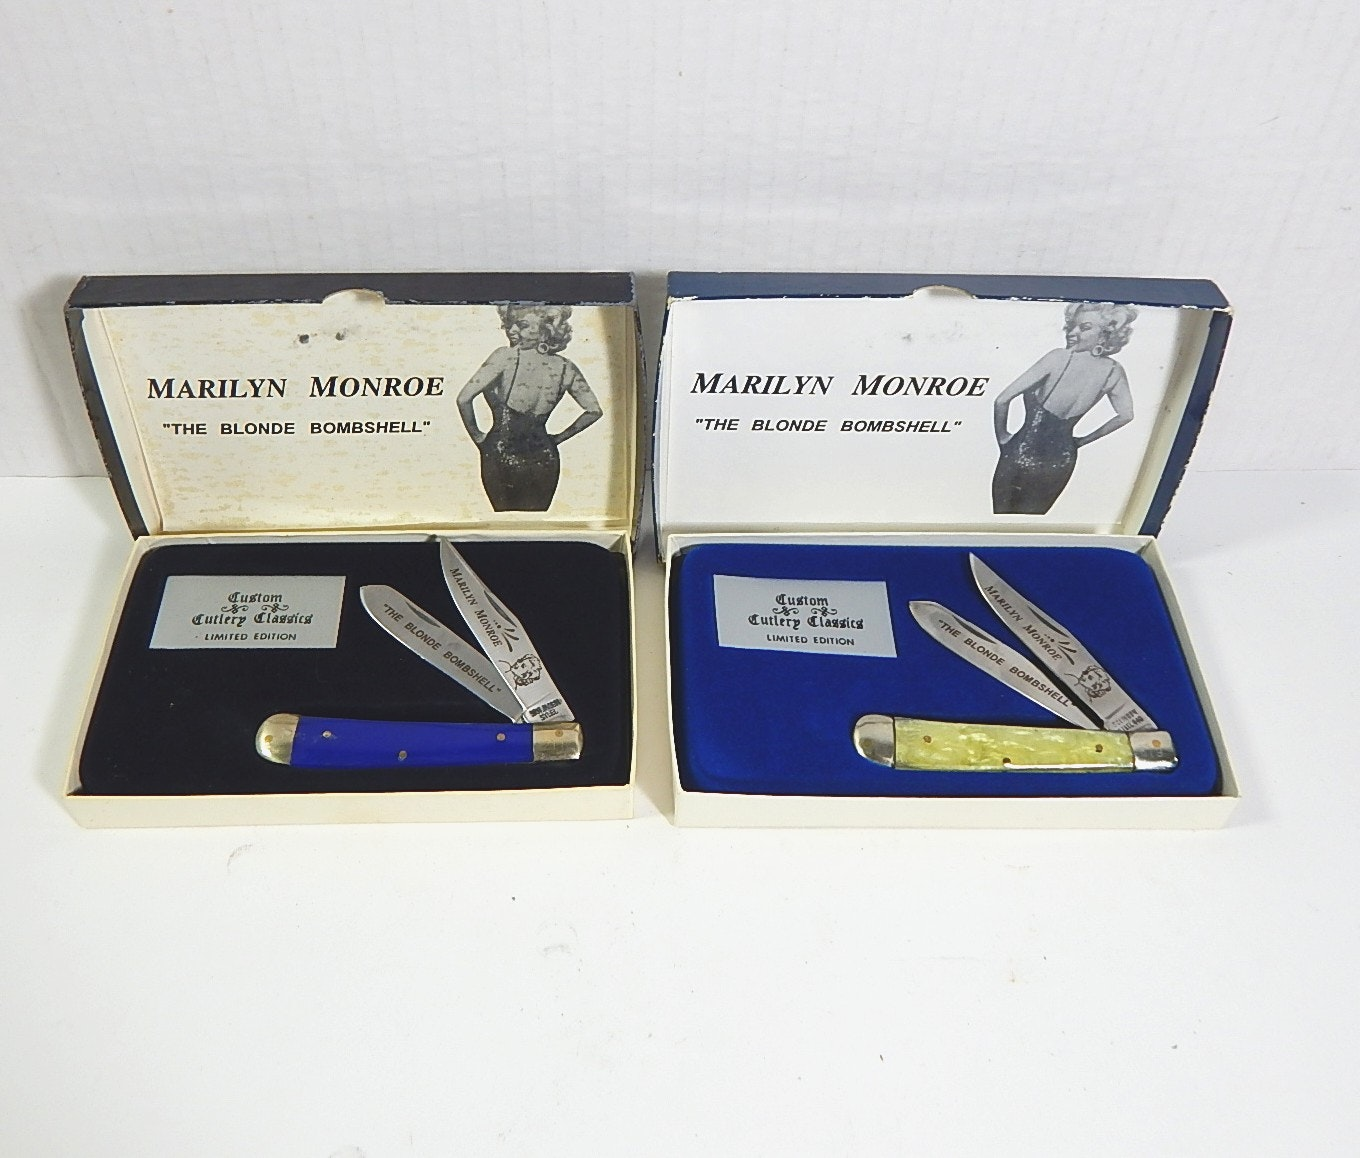 Two Marilyn Monroe Solingen Custom Cutlery Classics Double Bladed Folding Knives